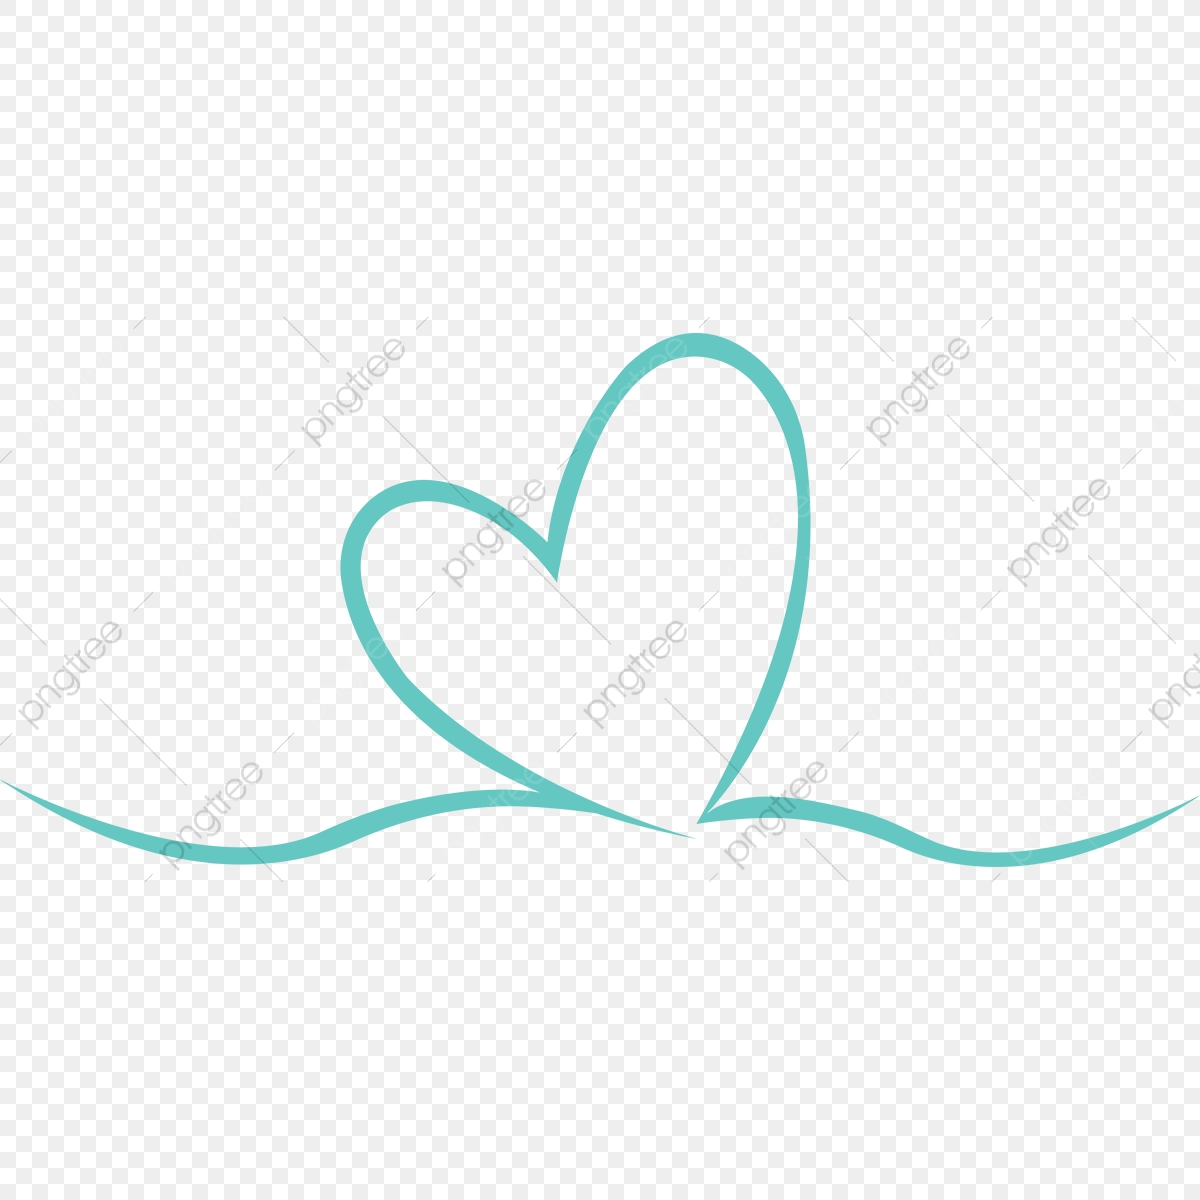 Heart Design Heart Outline, Heart, Swirl, Curly PNG and Vector with.